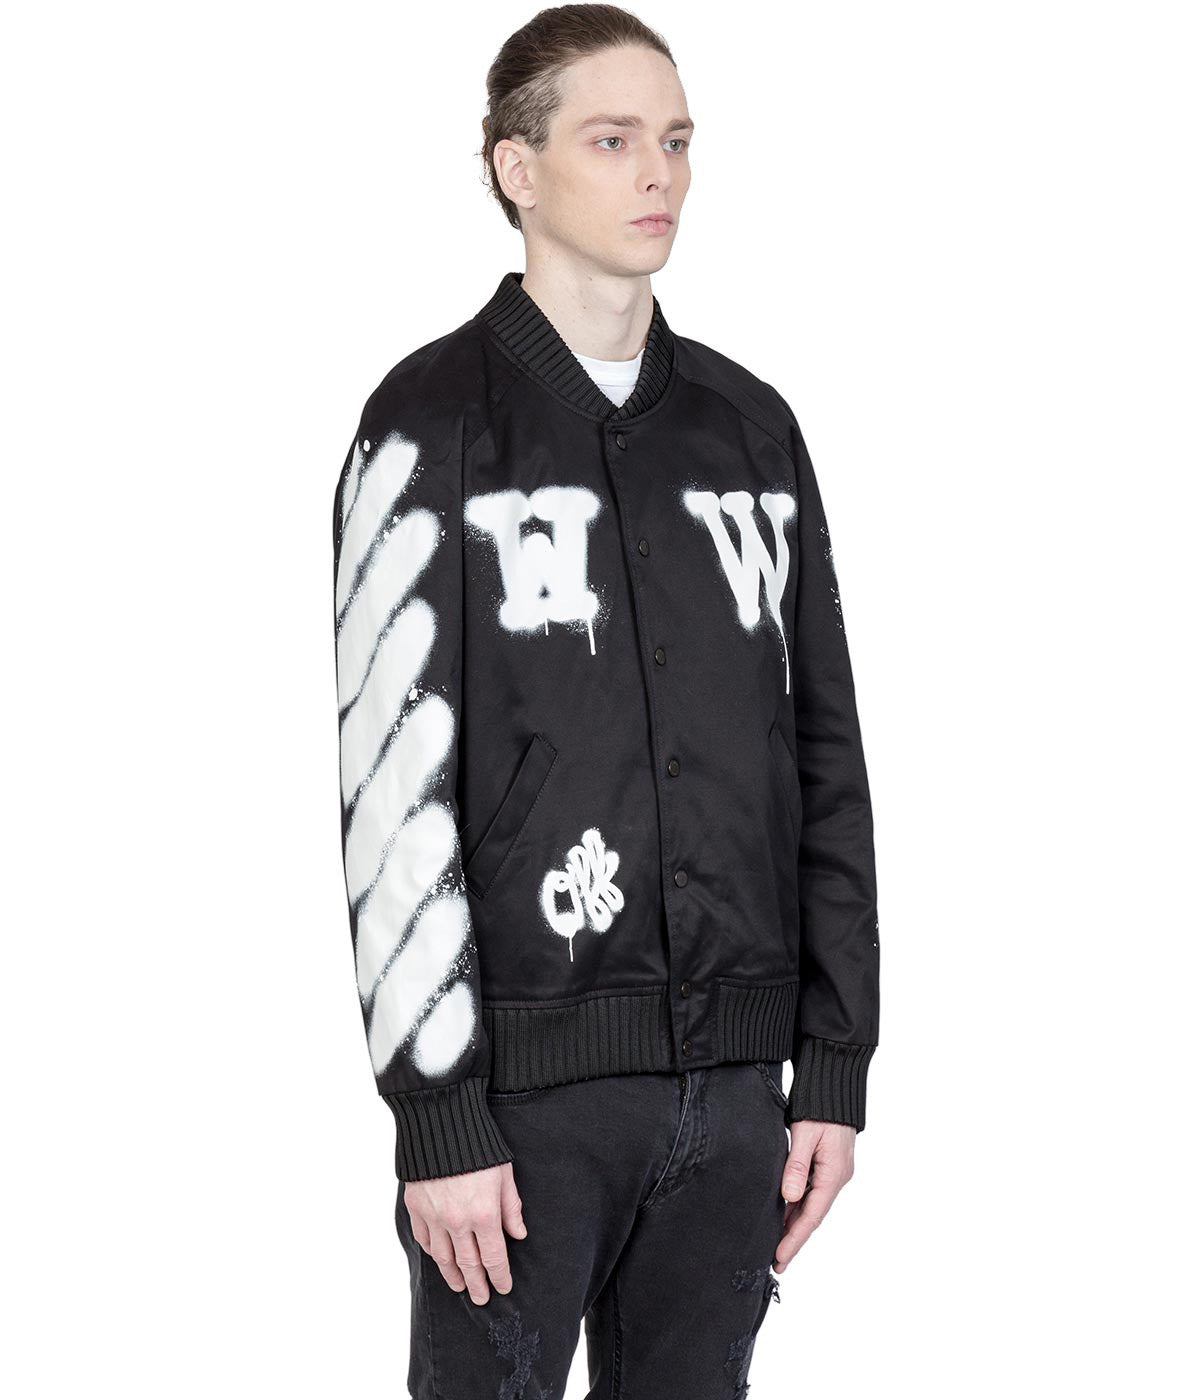 Black Graffiti Varsity Jacket